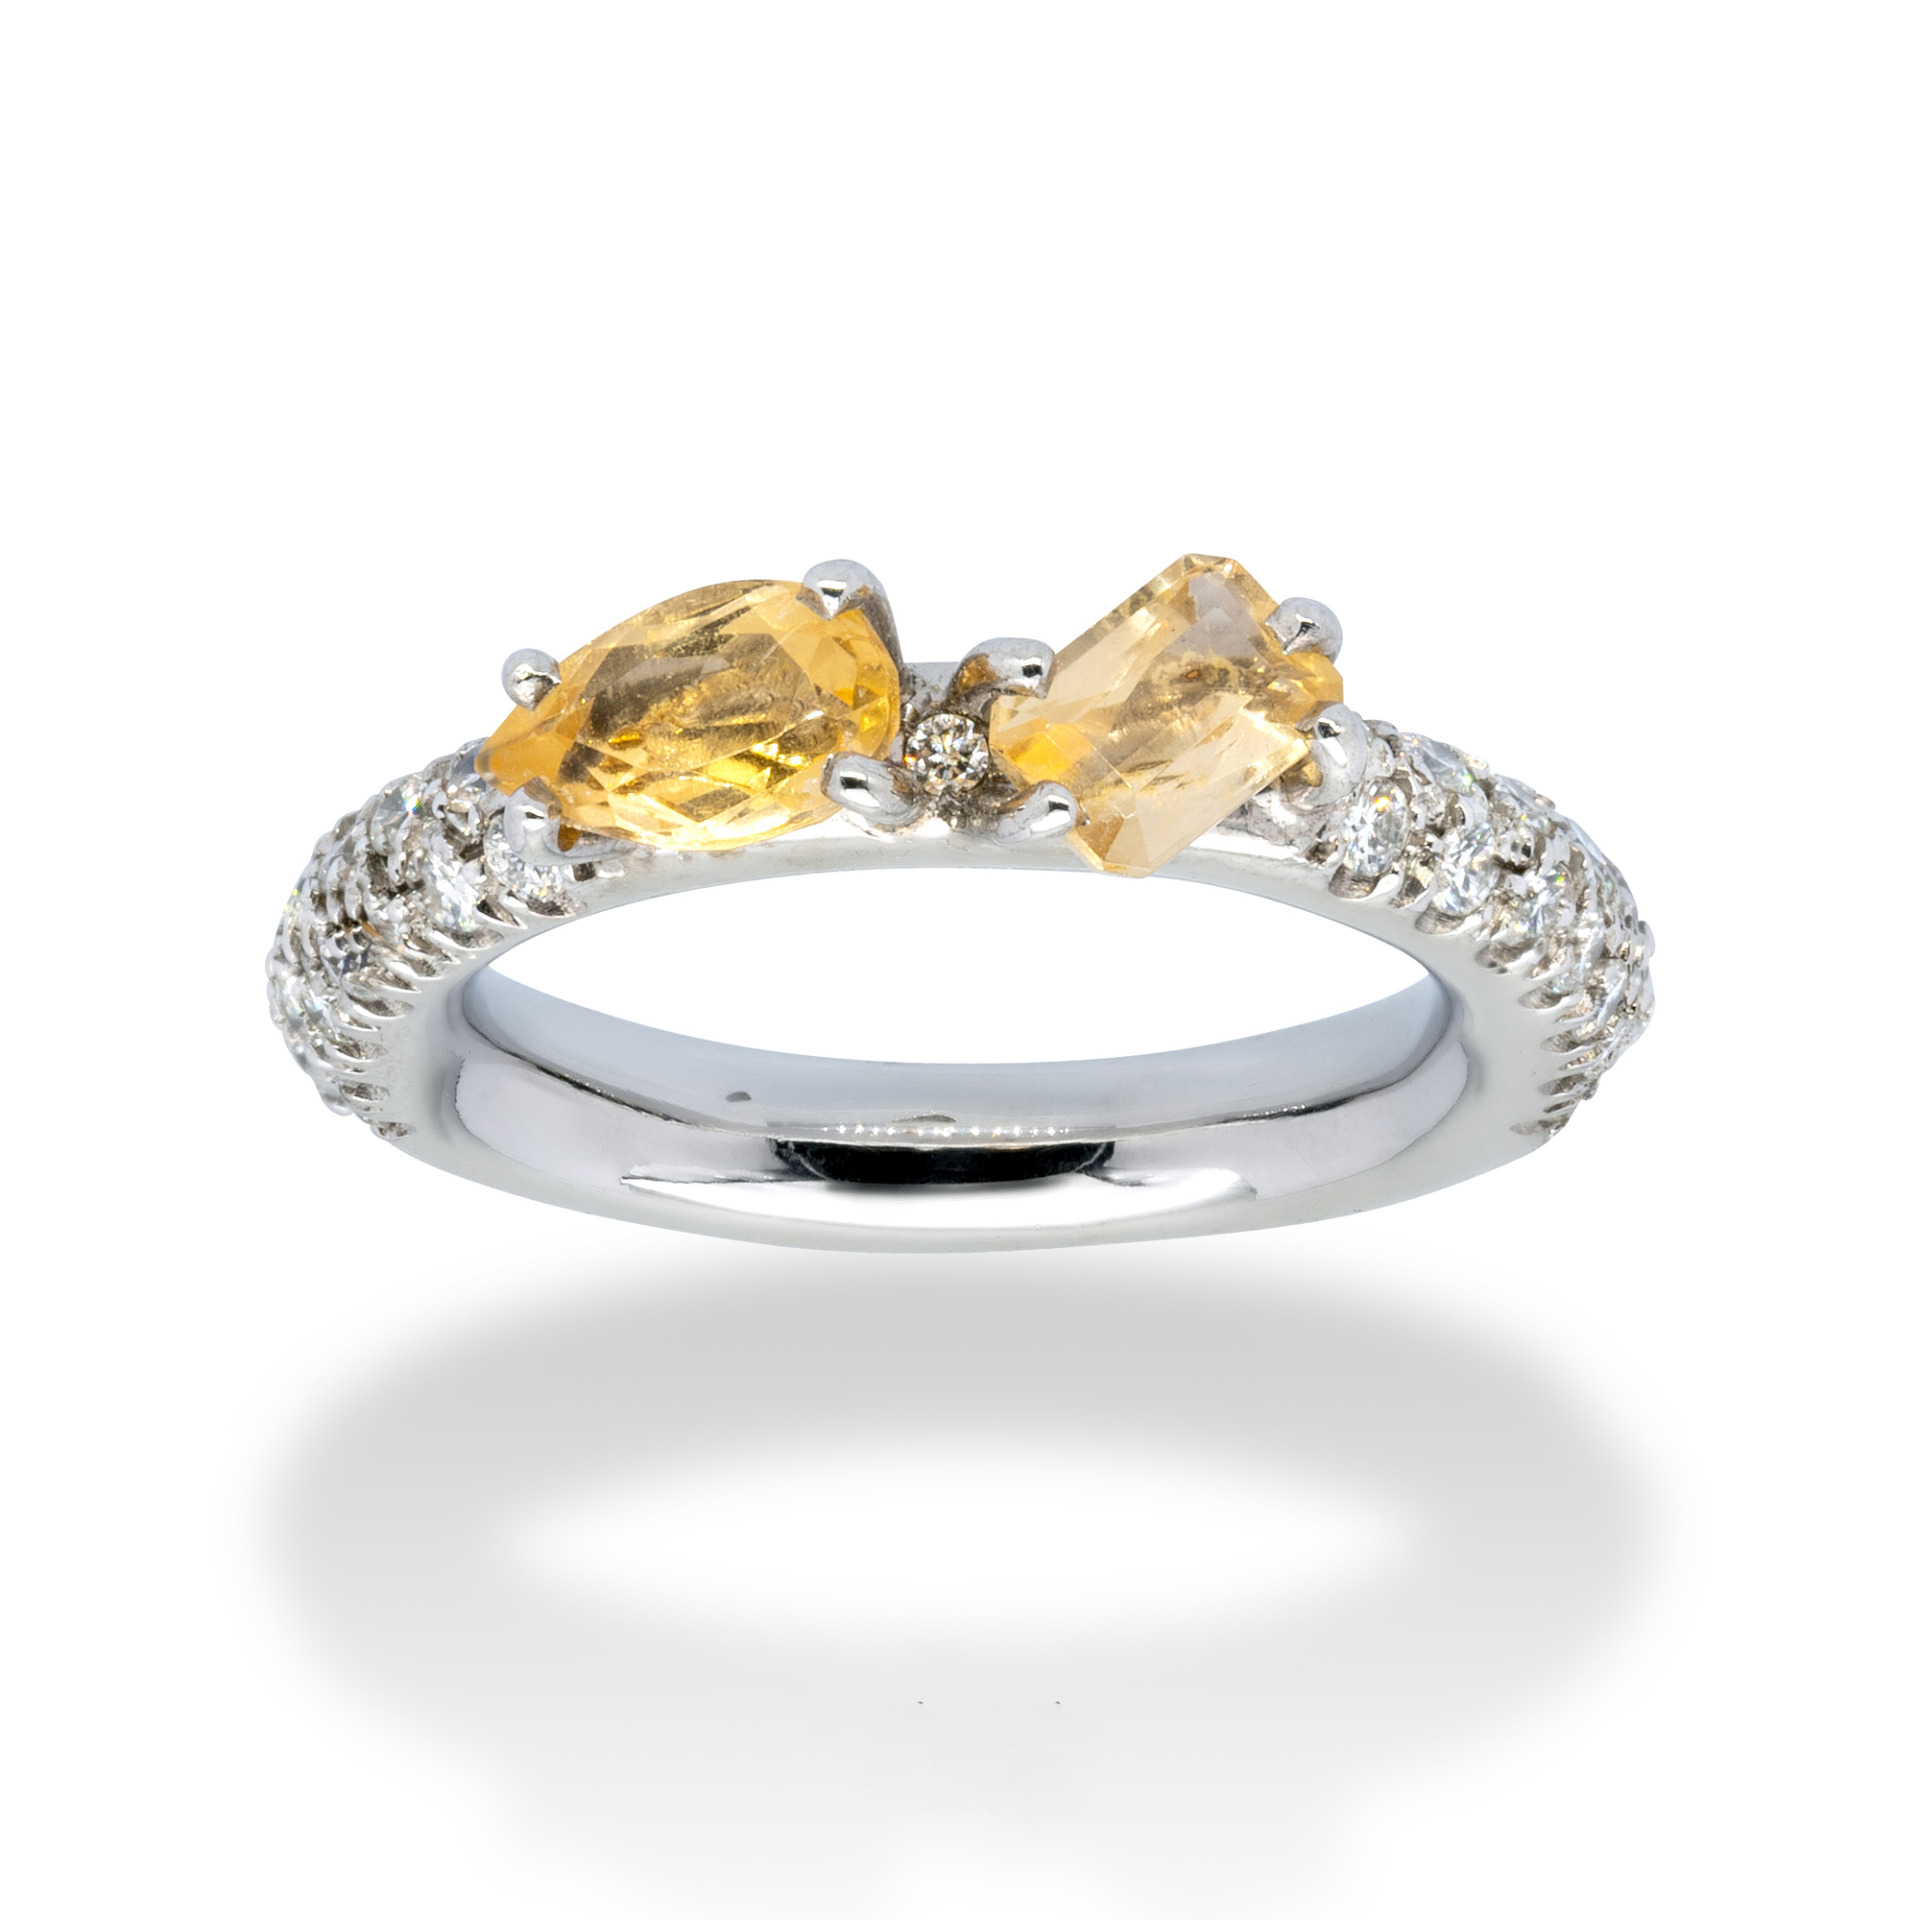 d'Avossa Ring with Imperial Topazes and Diamonds